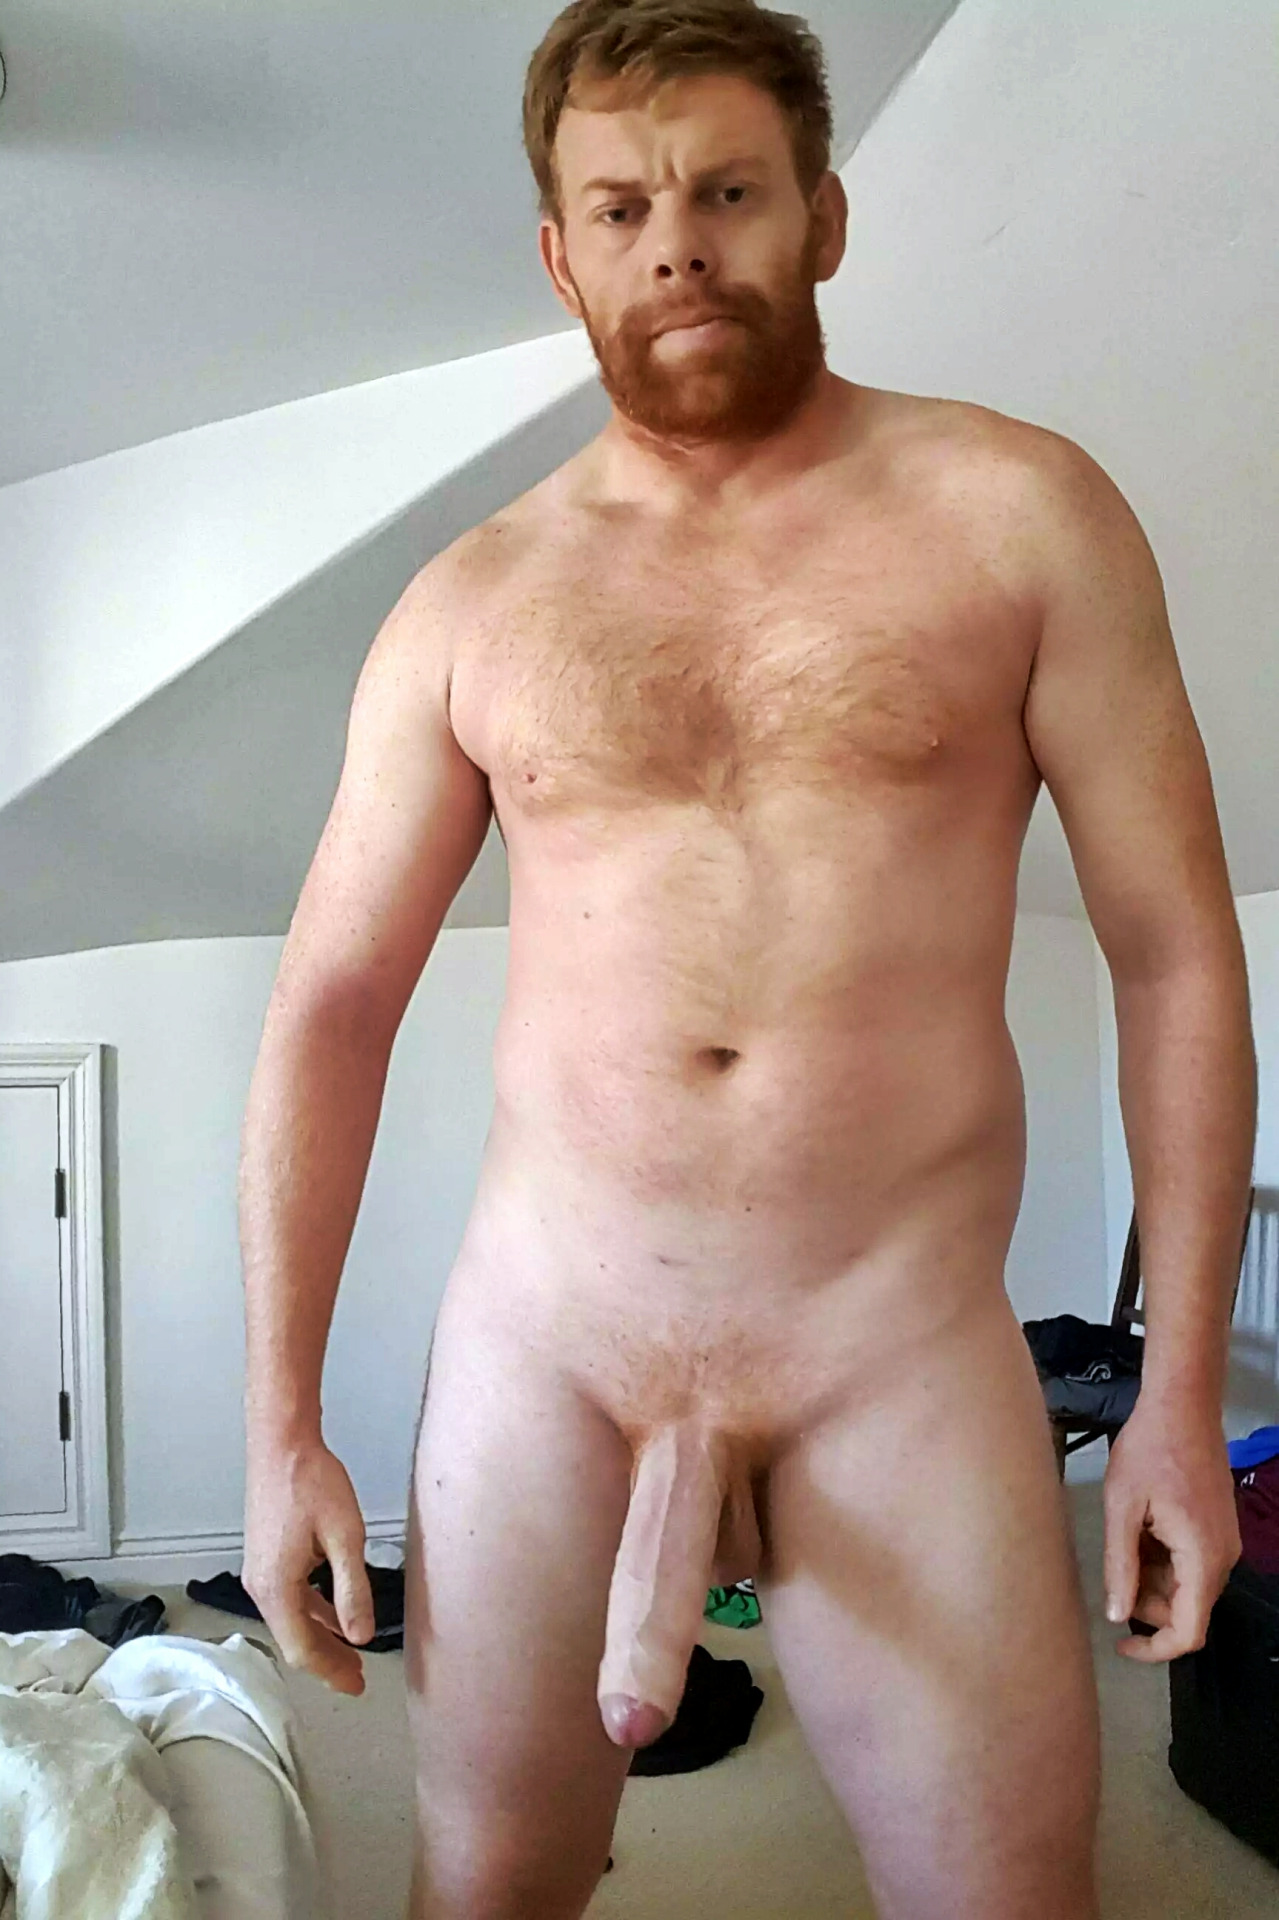 Nude_Male_Selfies